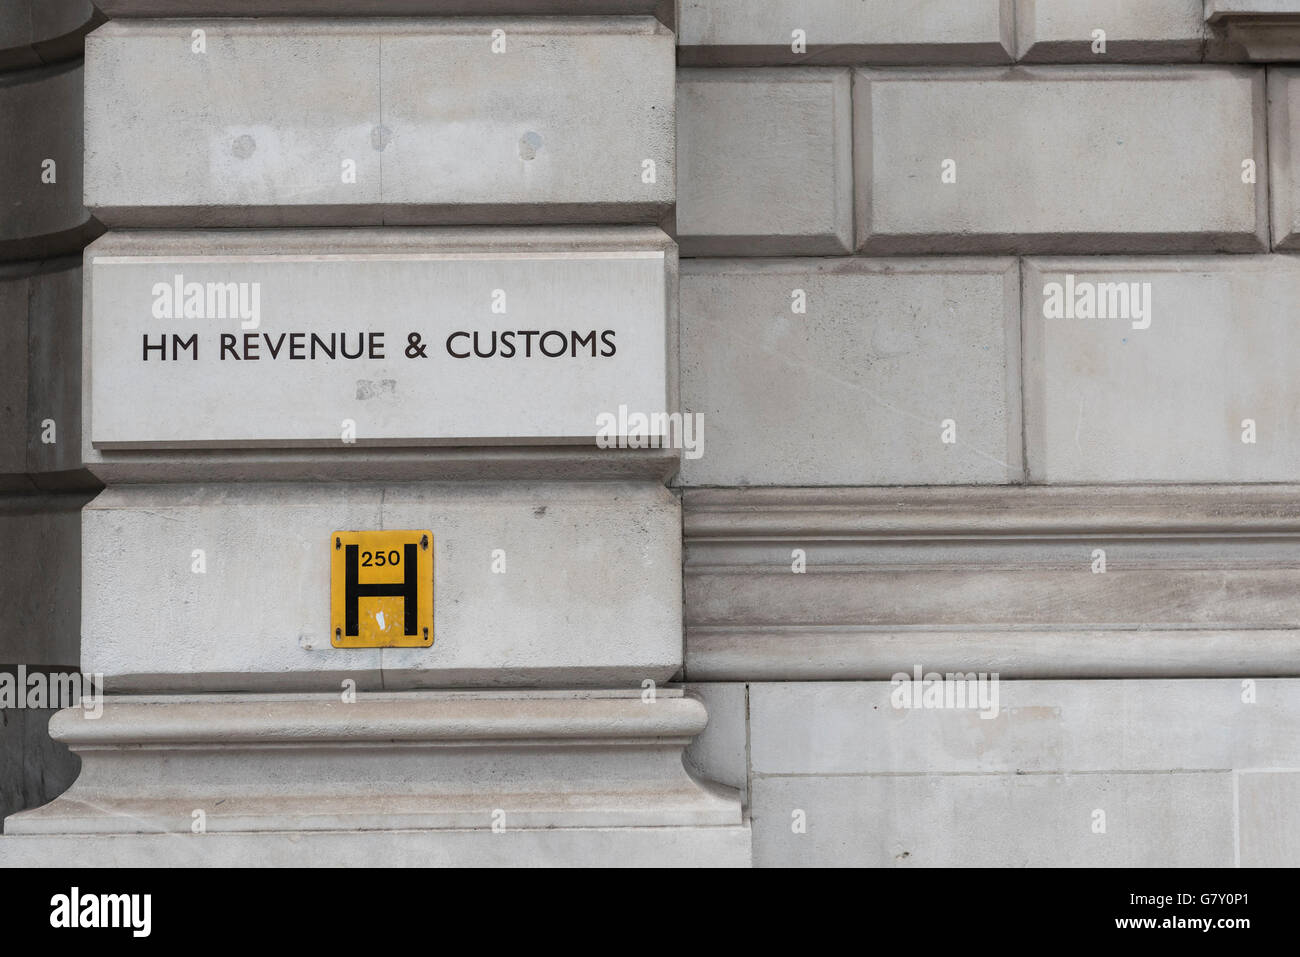 London, UK.  27 June 2016.  The HM Revenue and Customs (HMRC) office is seen in Whitehall.  The UK's tax authority Stock Photo